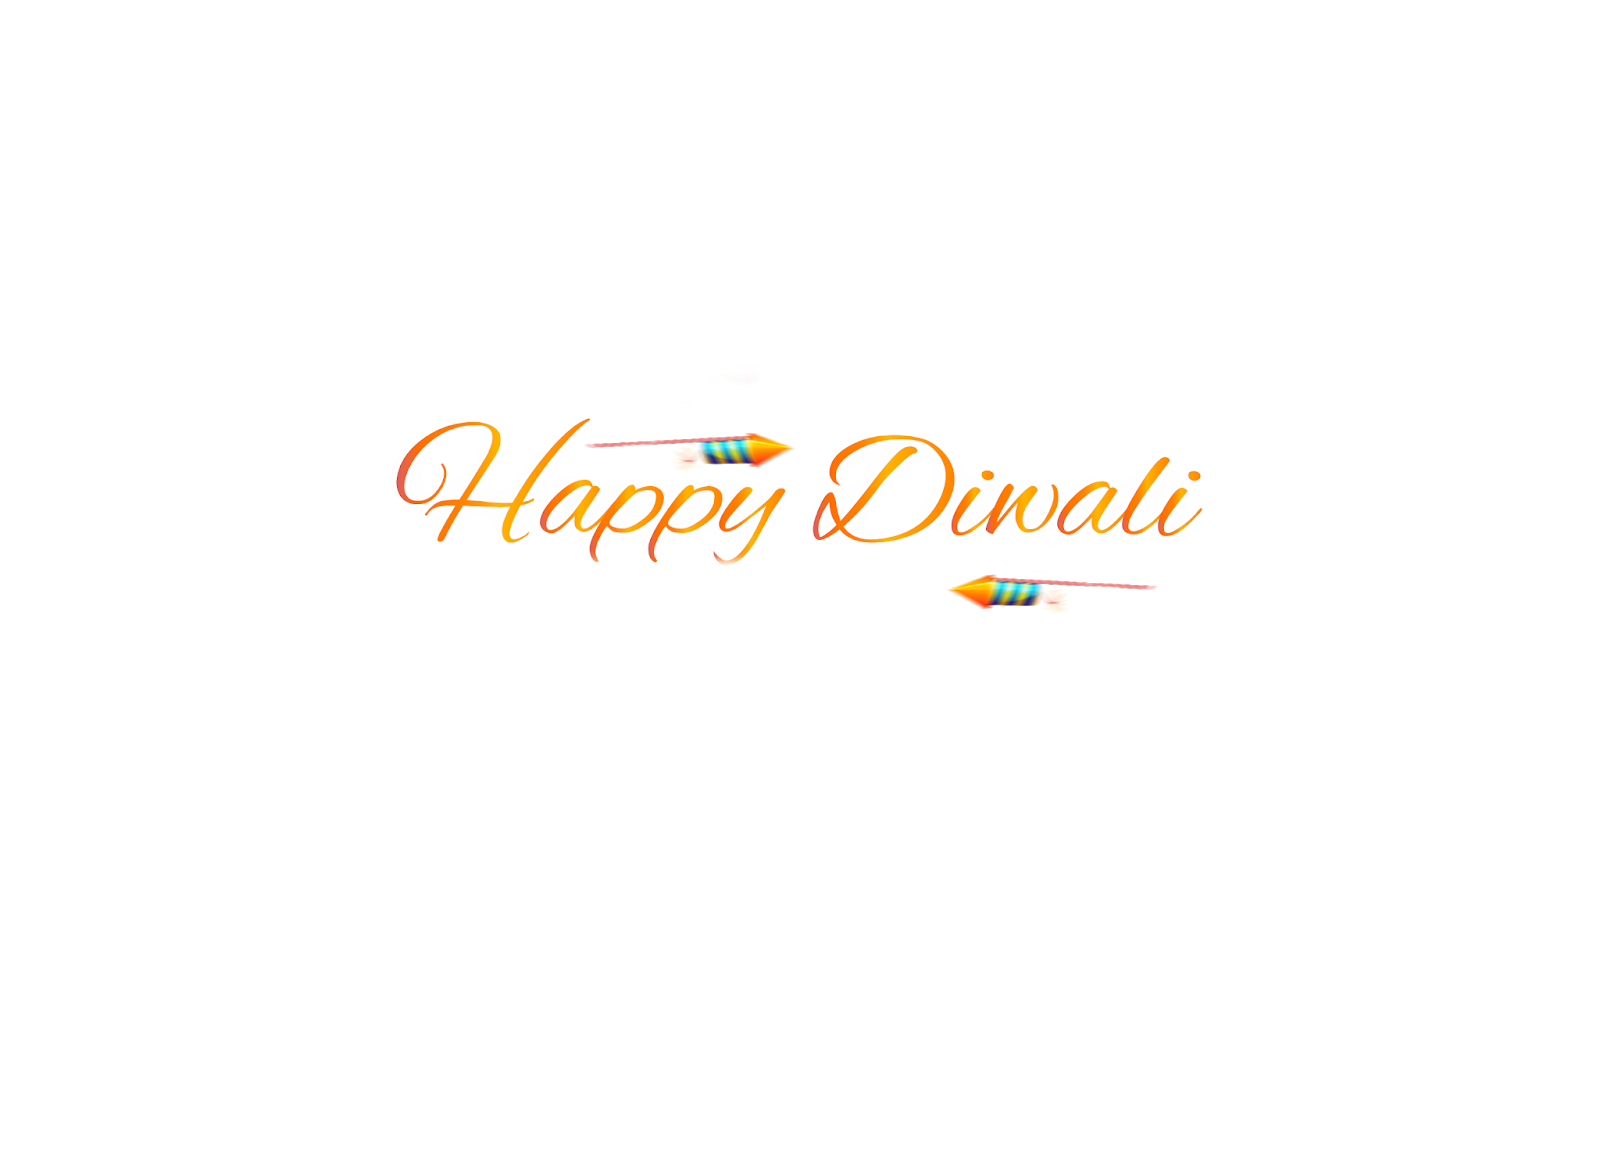 Happy Diwali Text png for editing by mmp picture.